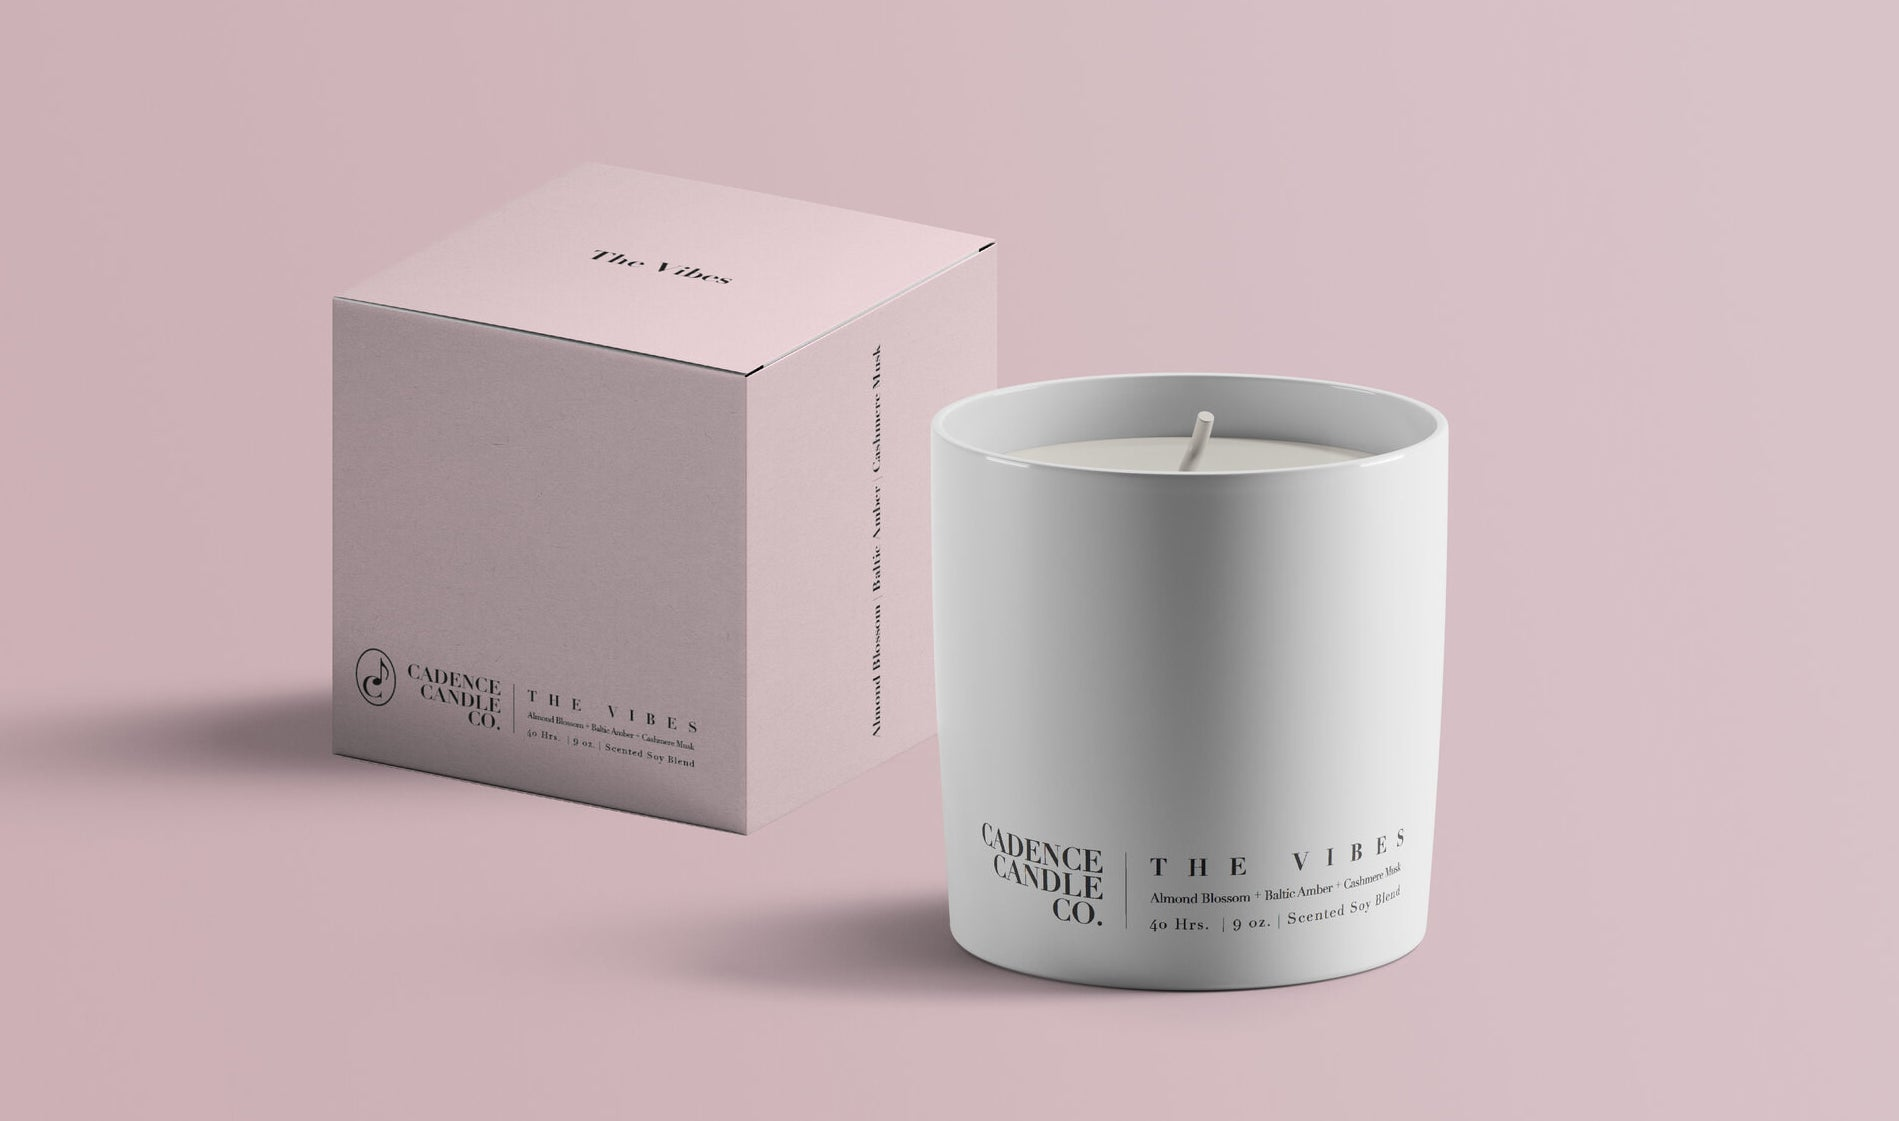 """a white candle that says """"the vibes"""" on it next to a pale blue box"""